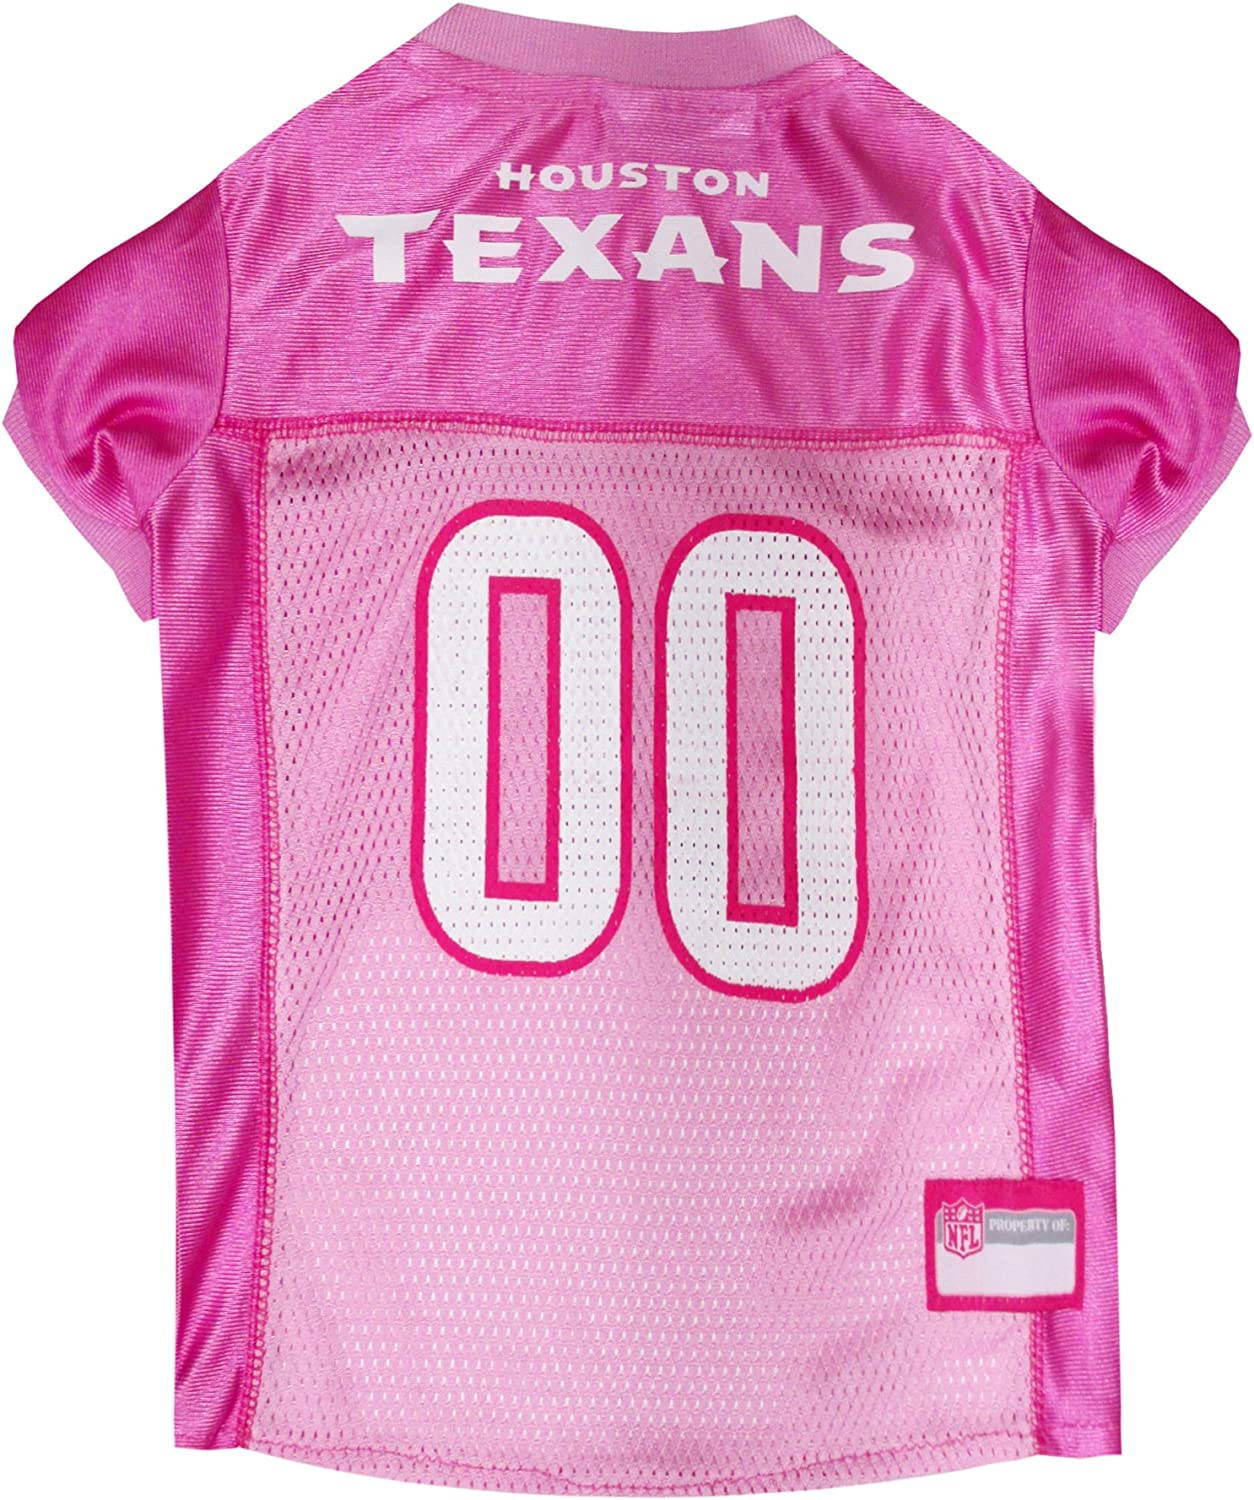 Pets First NFL Houston Texans Jersey, X-Small, Pink